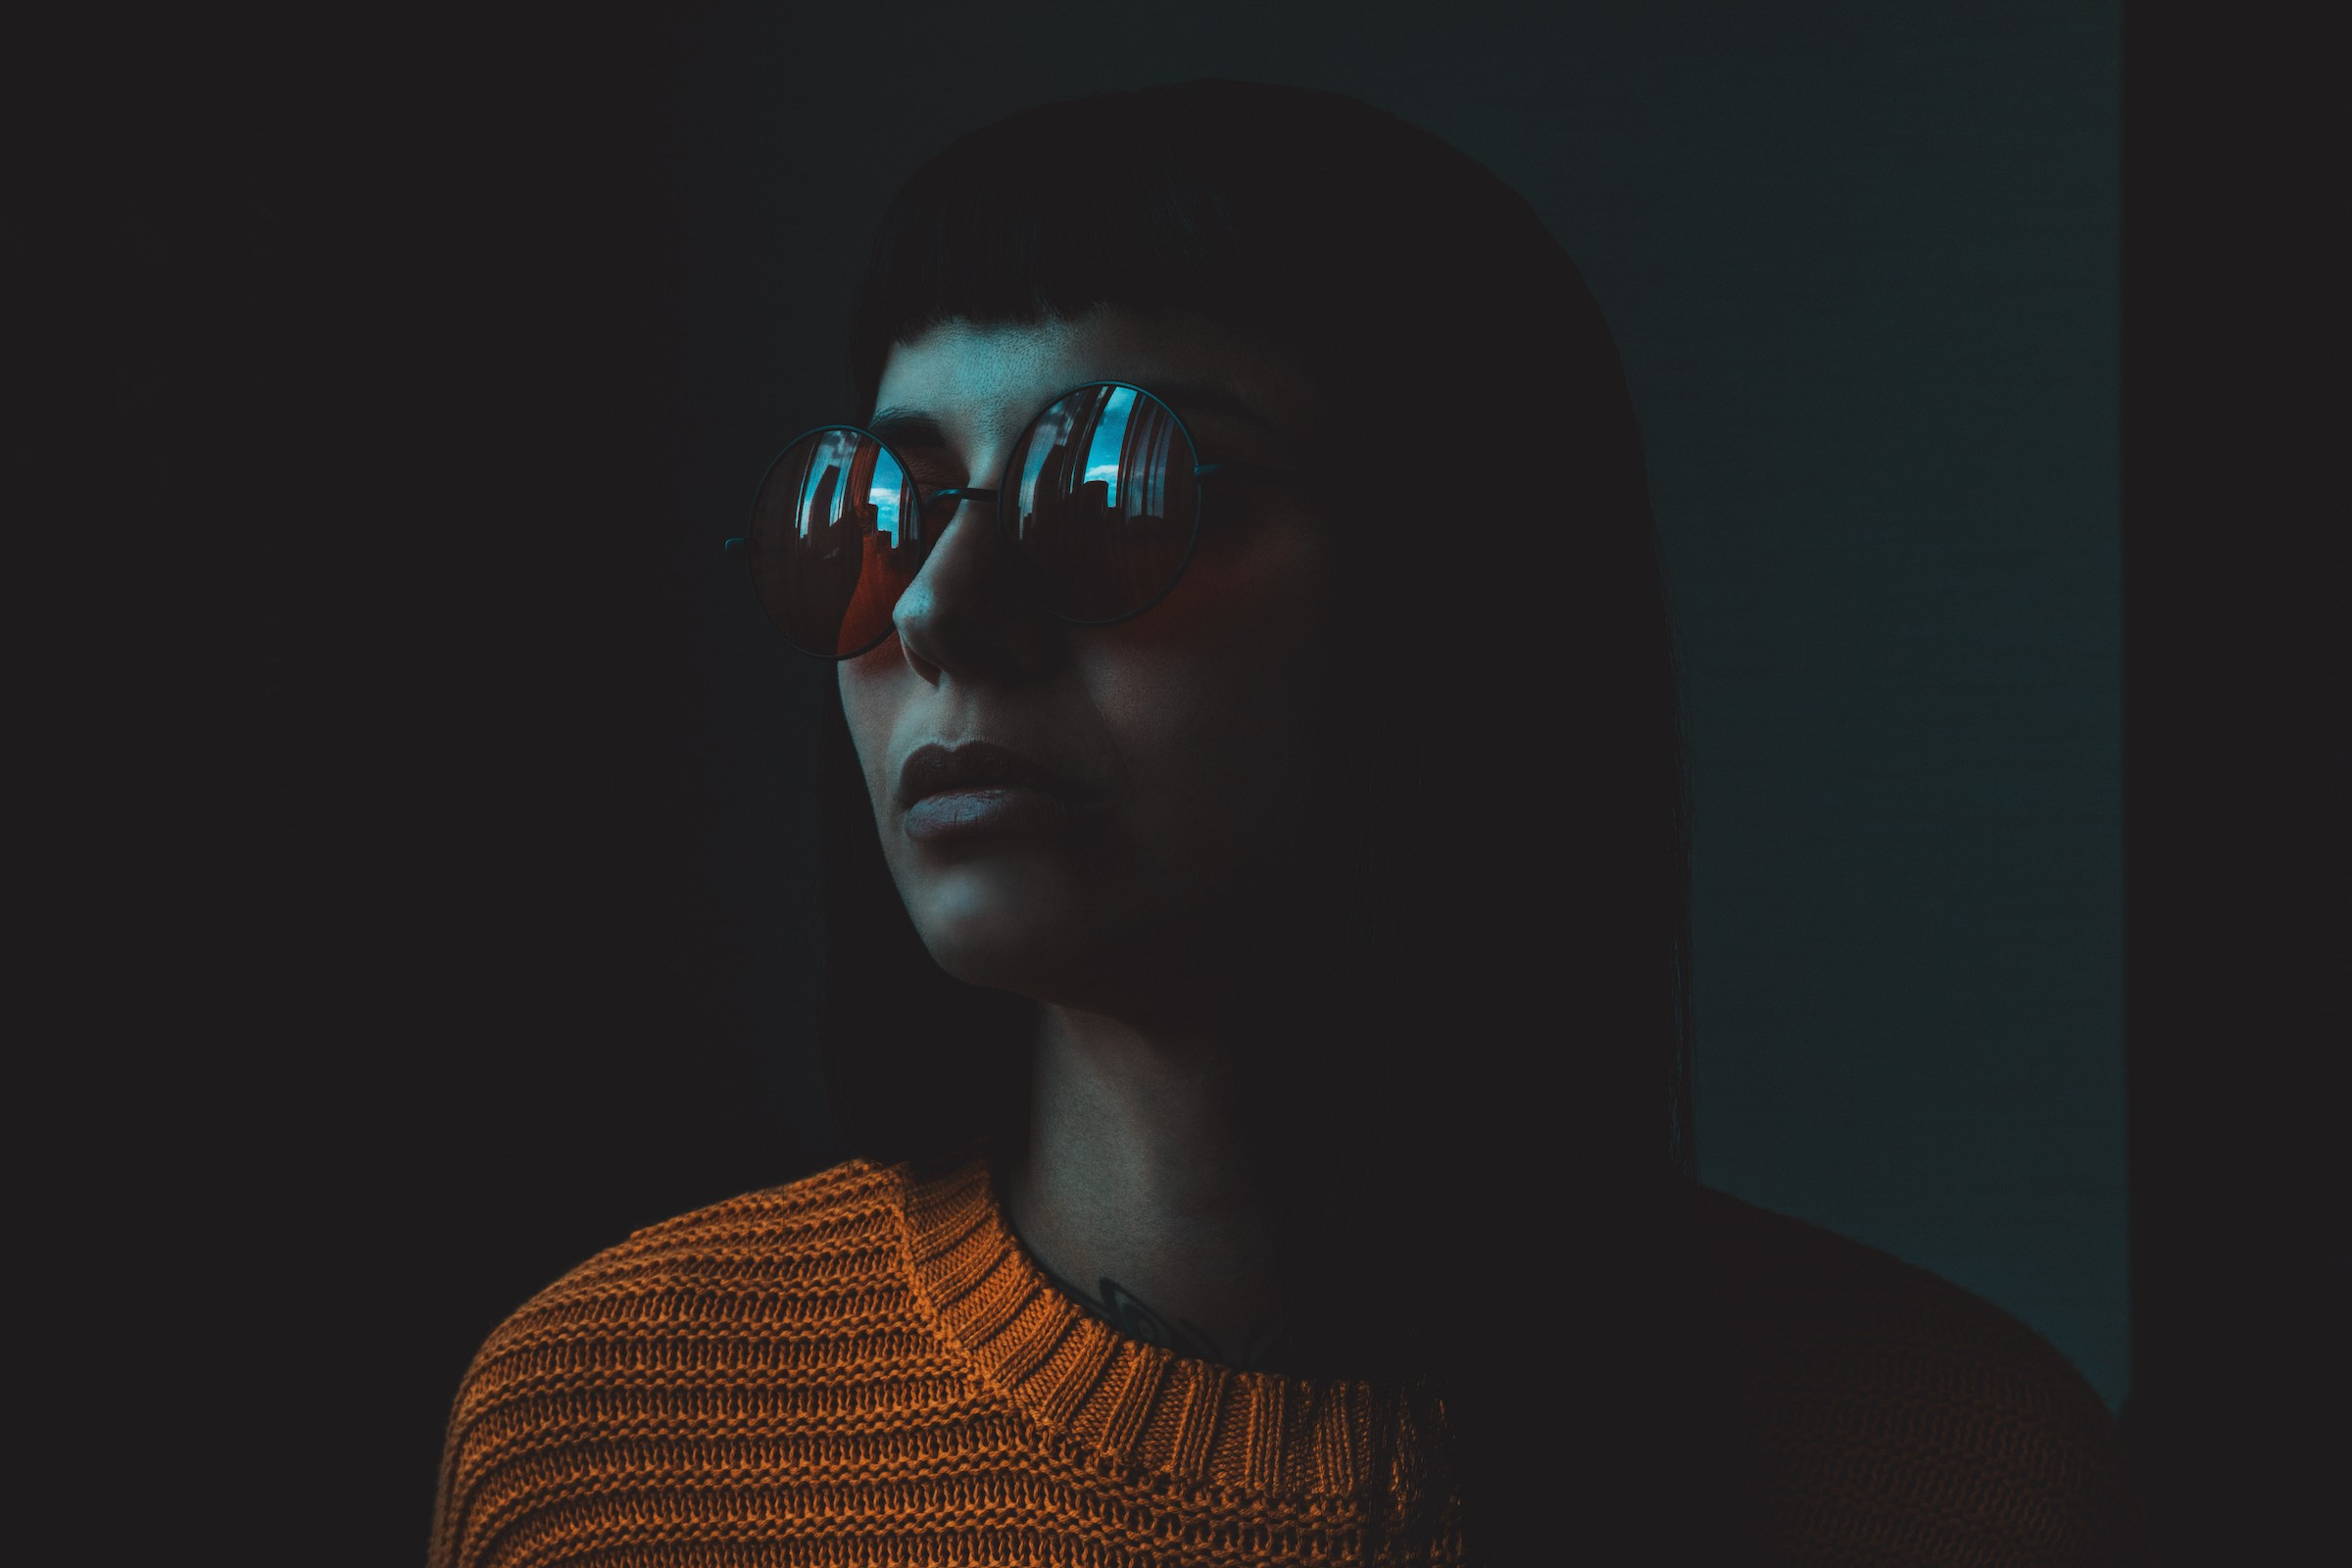 Portrait of a person—wearing a bob haircut, big dark sunglasses, and an orange knitted sweater—looking to the left side of the image in a very dark space. Reflected in the sunglasses is an open window showing a sliver of blue sky on each lens.